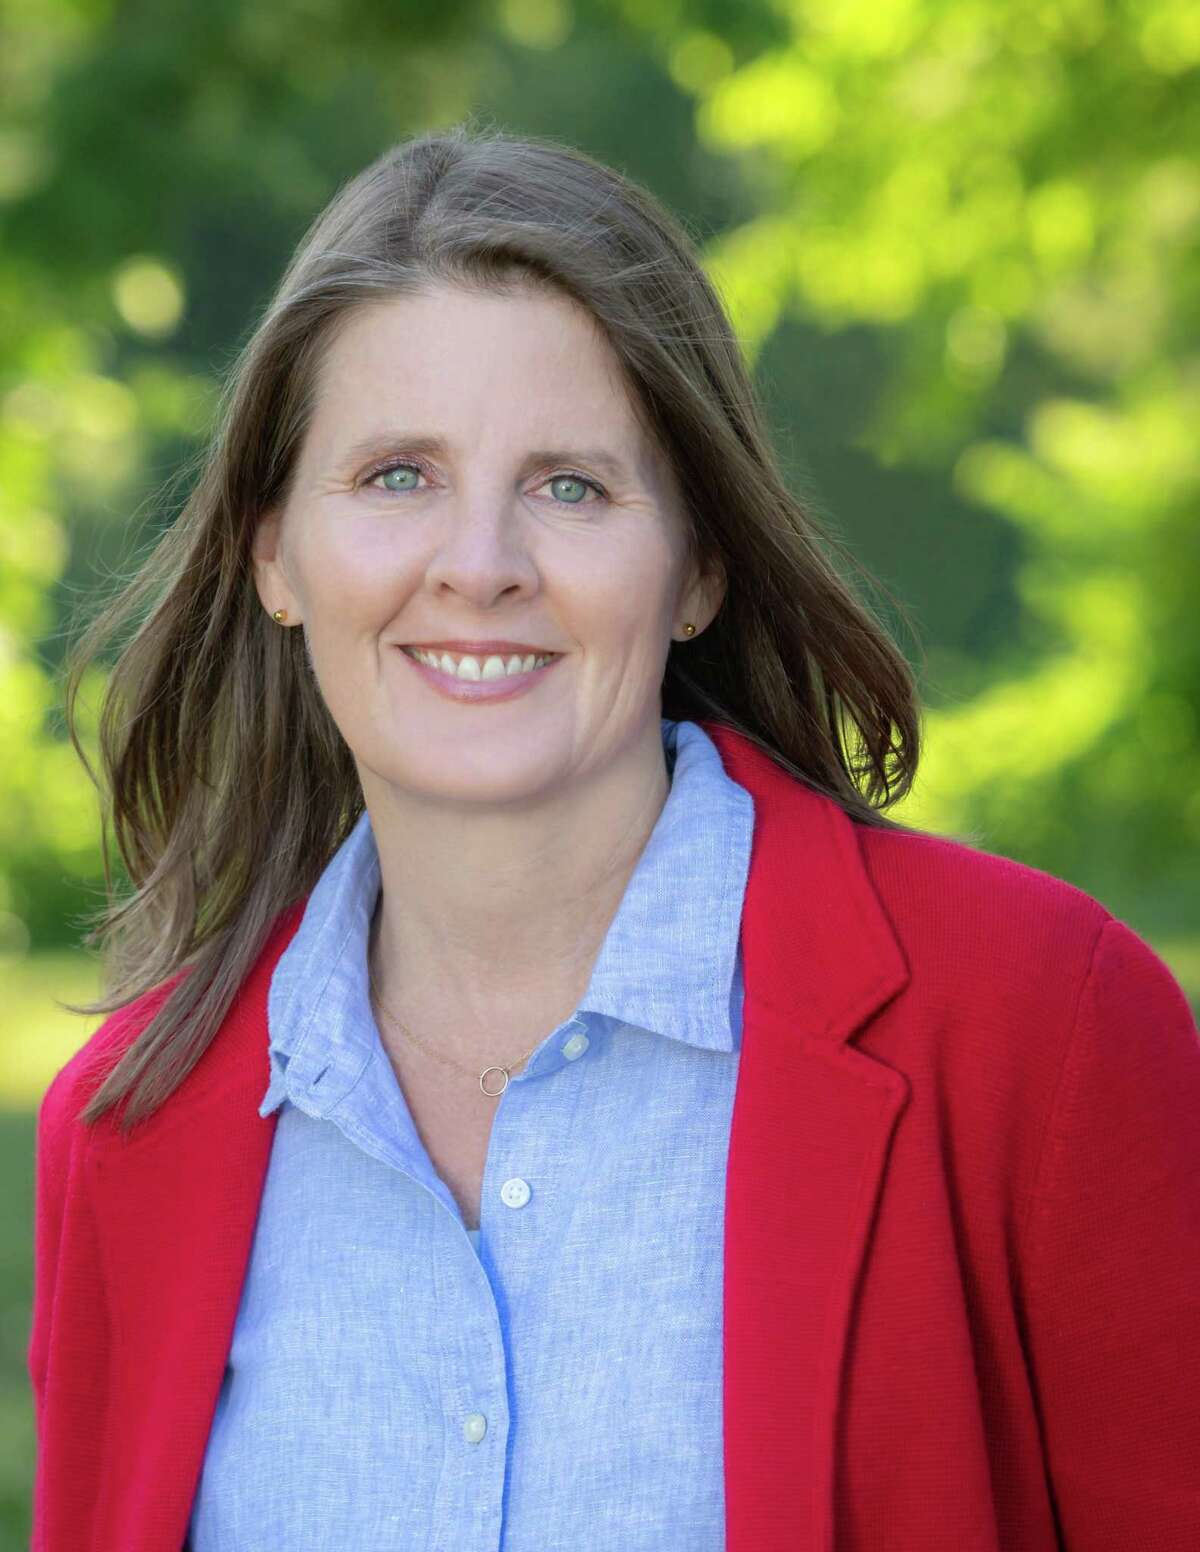 Connecticut Republican, and also Independent candidate for the state's 26th state Senate seat, Kim Healy, (pictured), is in this previous photo of her. This letter writer gives his opinion about Healy for the upcoming election, November 3.